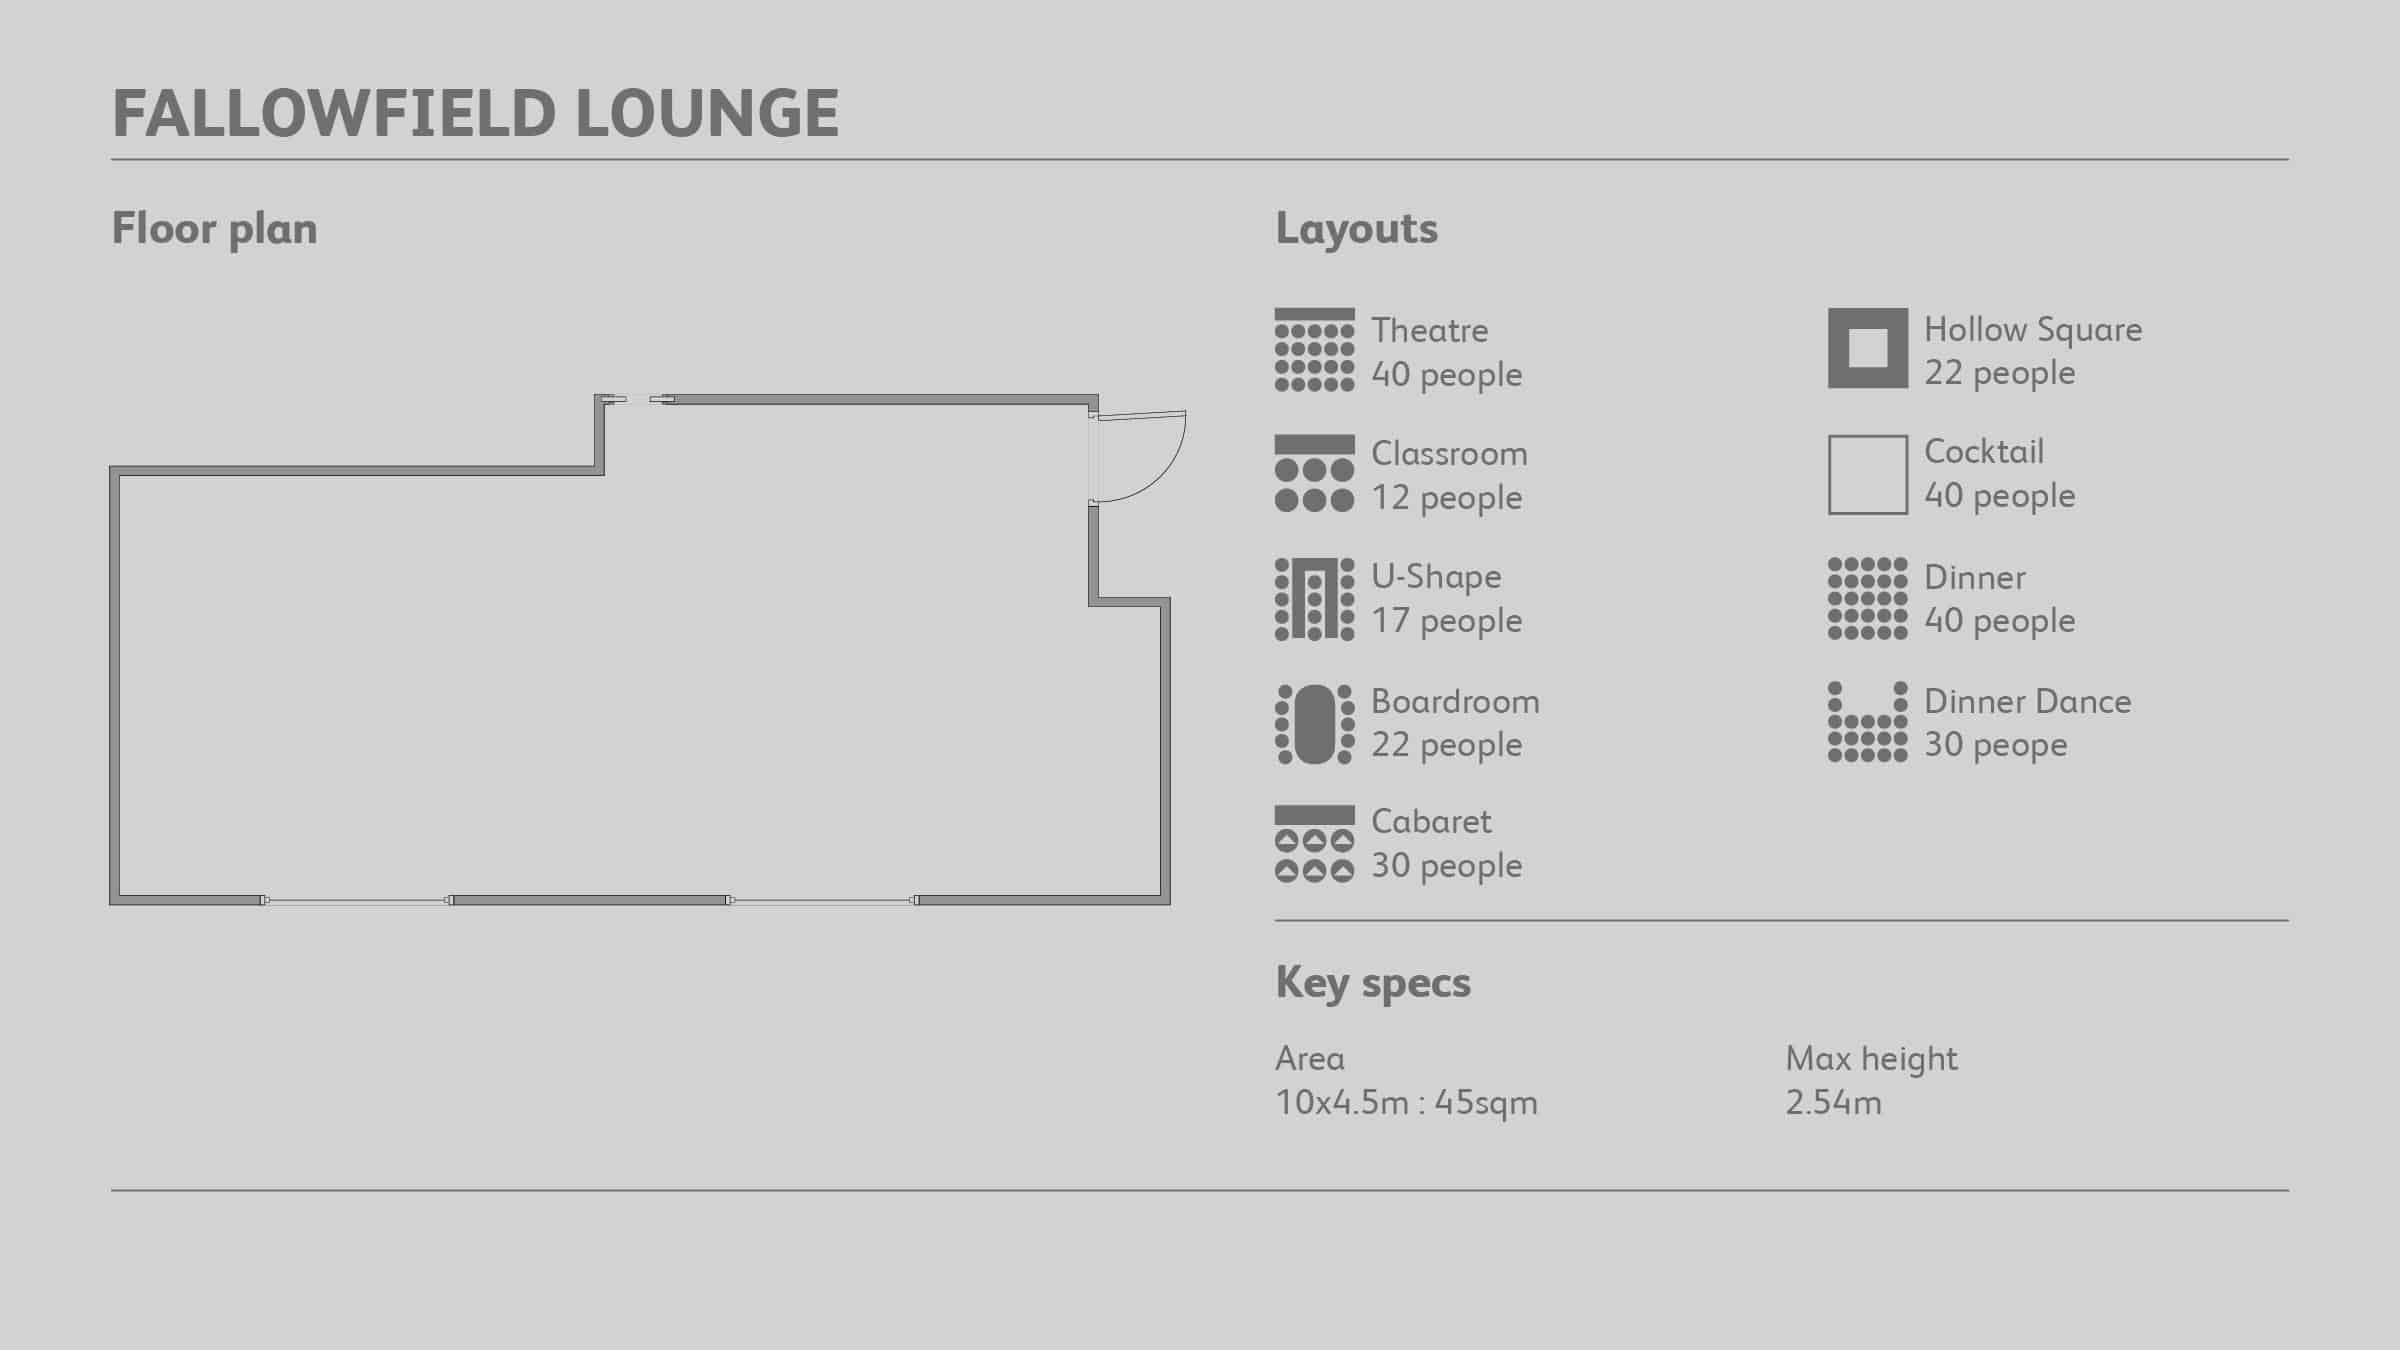 Floor plan of Fallowfield Lounge